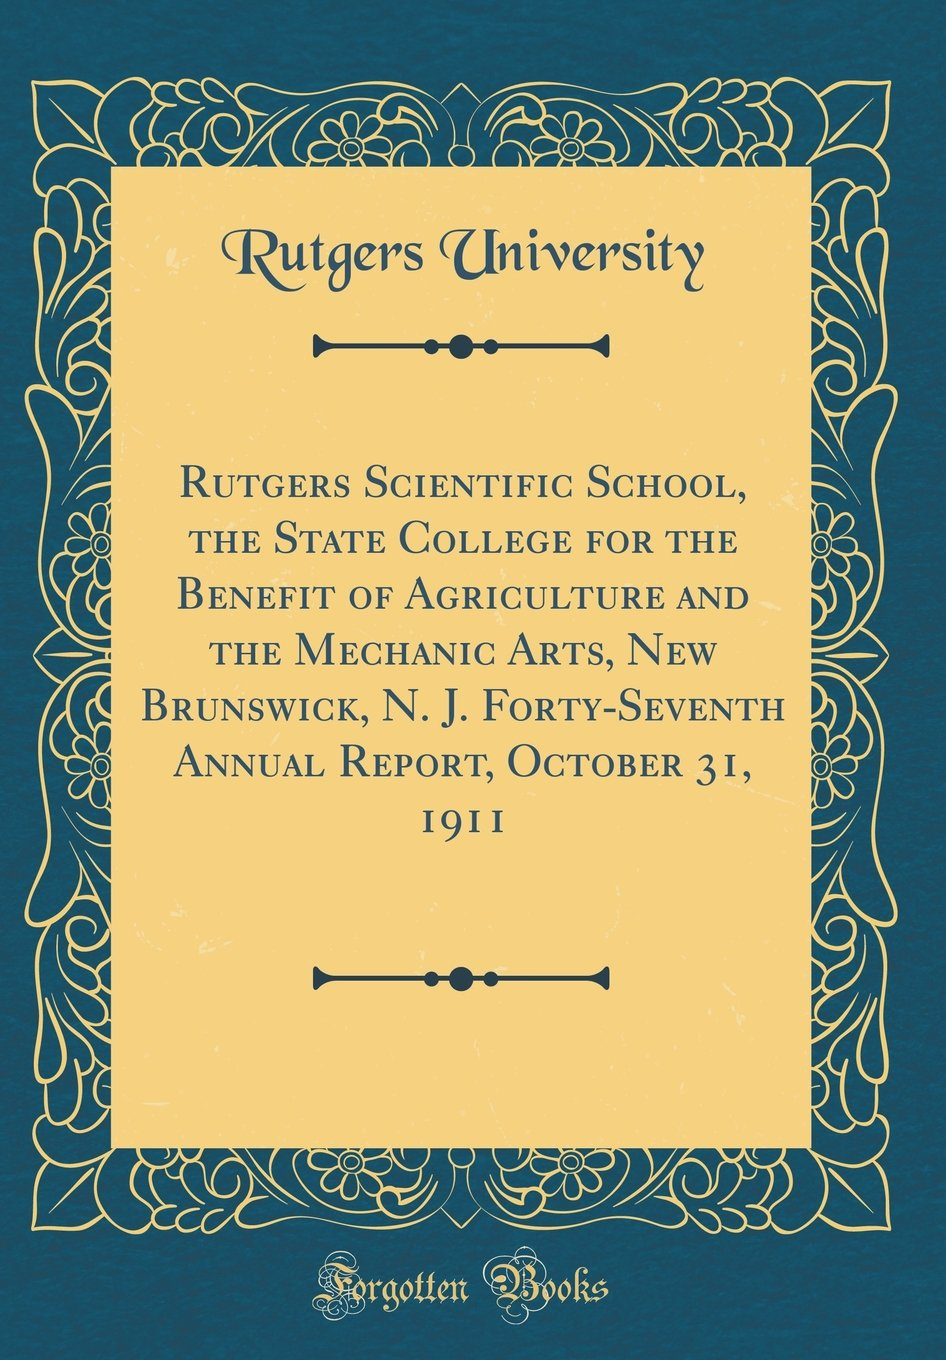 Download Rutgers Scientific School, the State College for the Benefit of Agriculture and the Mechanic Arts, New Brunswick, N. J. Forty-Seventh Annual Report, October 31, 1911 (Classic Reprint) pdf